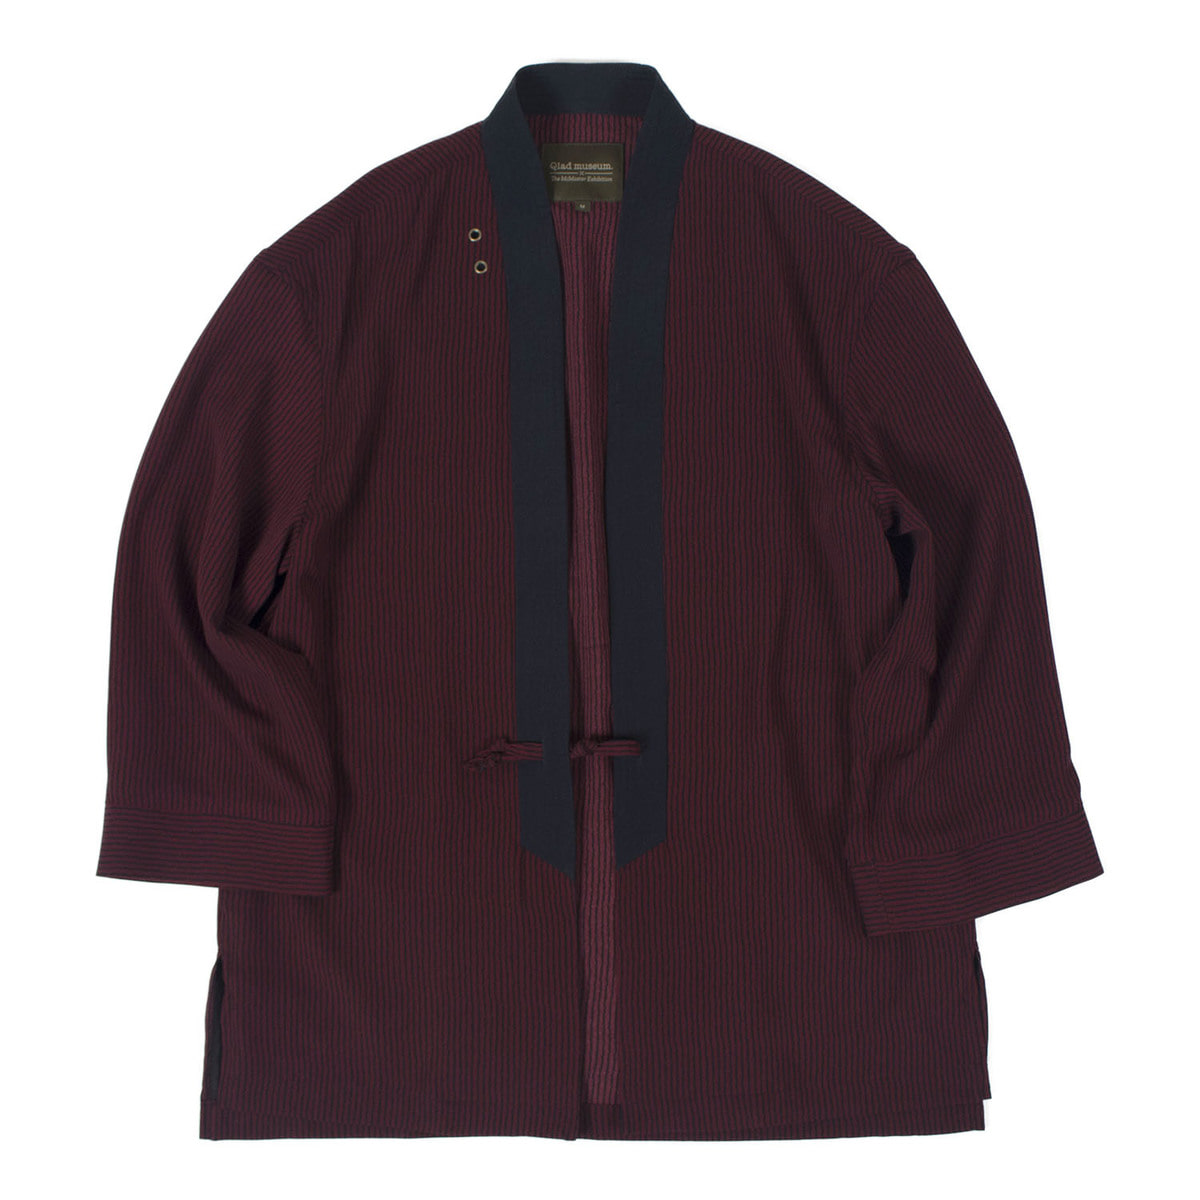 Relaxed Haori Jacket (Burgundy)